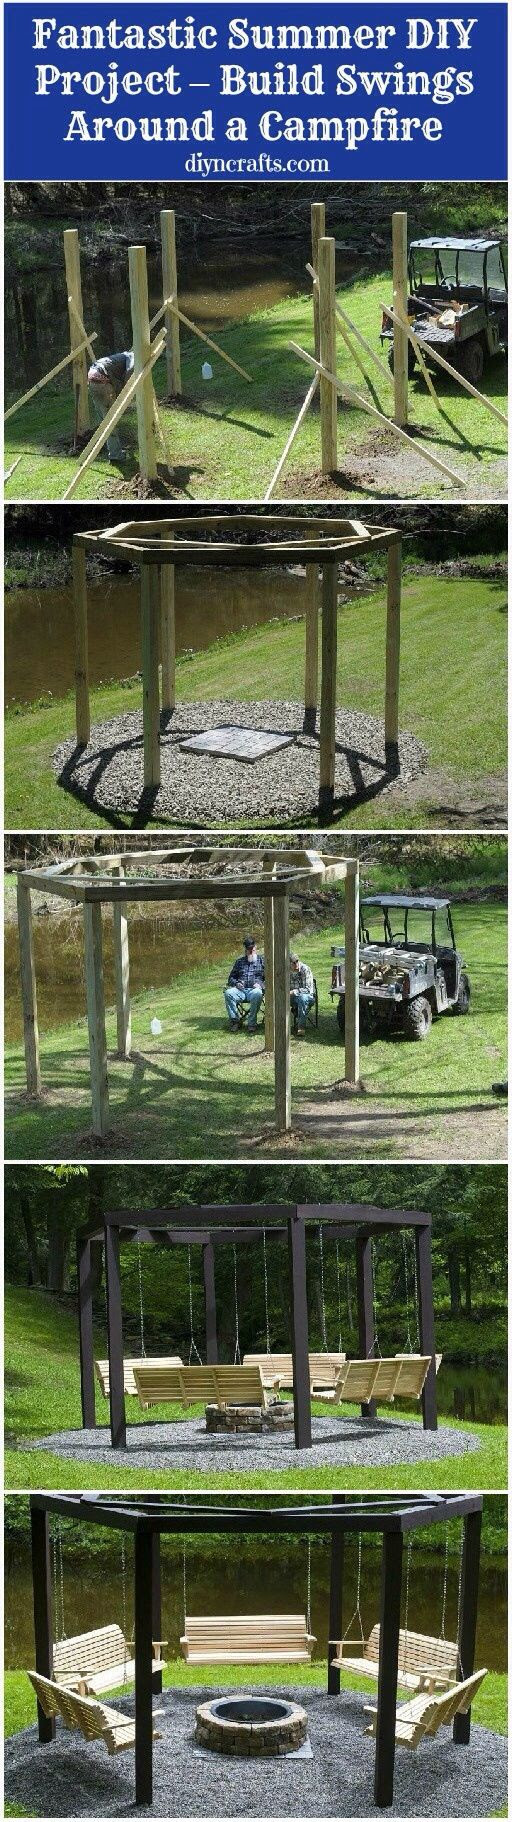 Swings around a fire pit.